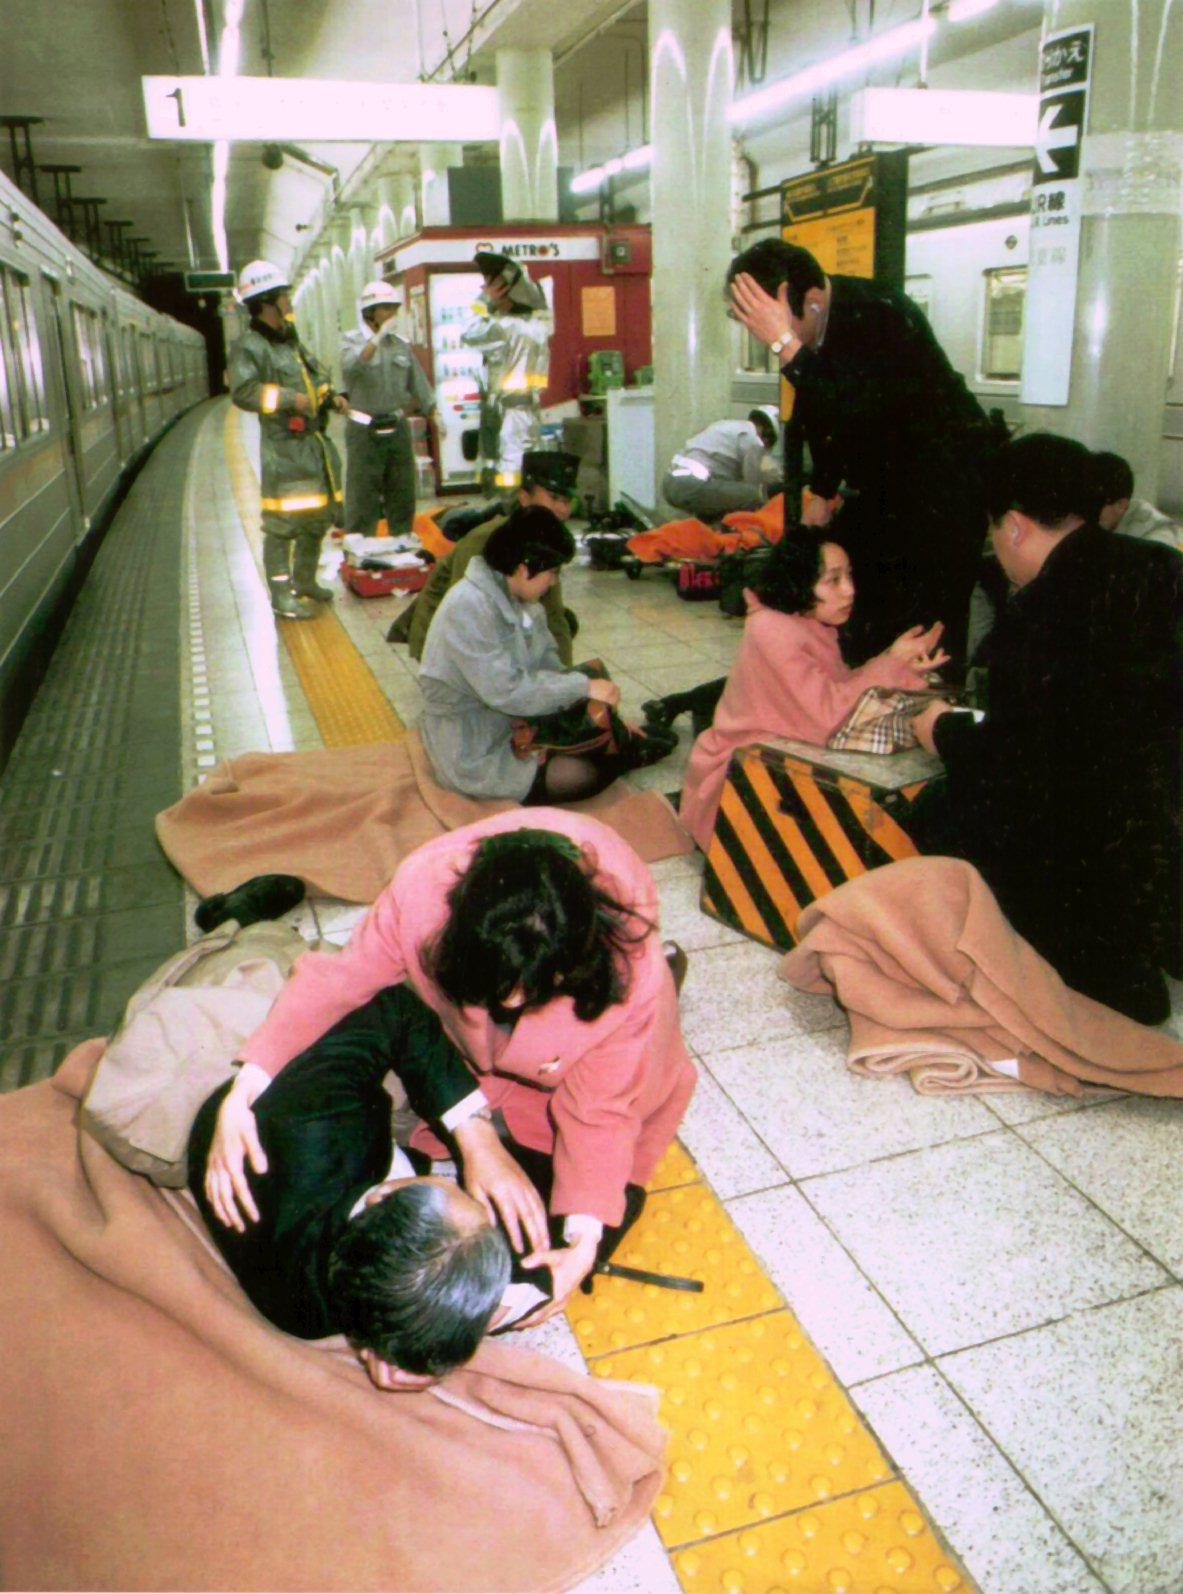 FILE SUBWAY NERVE GAS ATTACK 1995